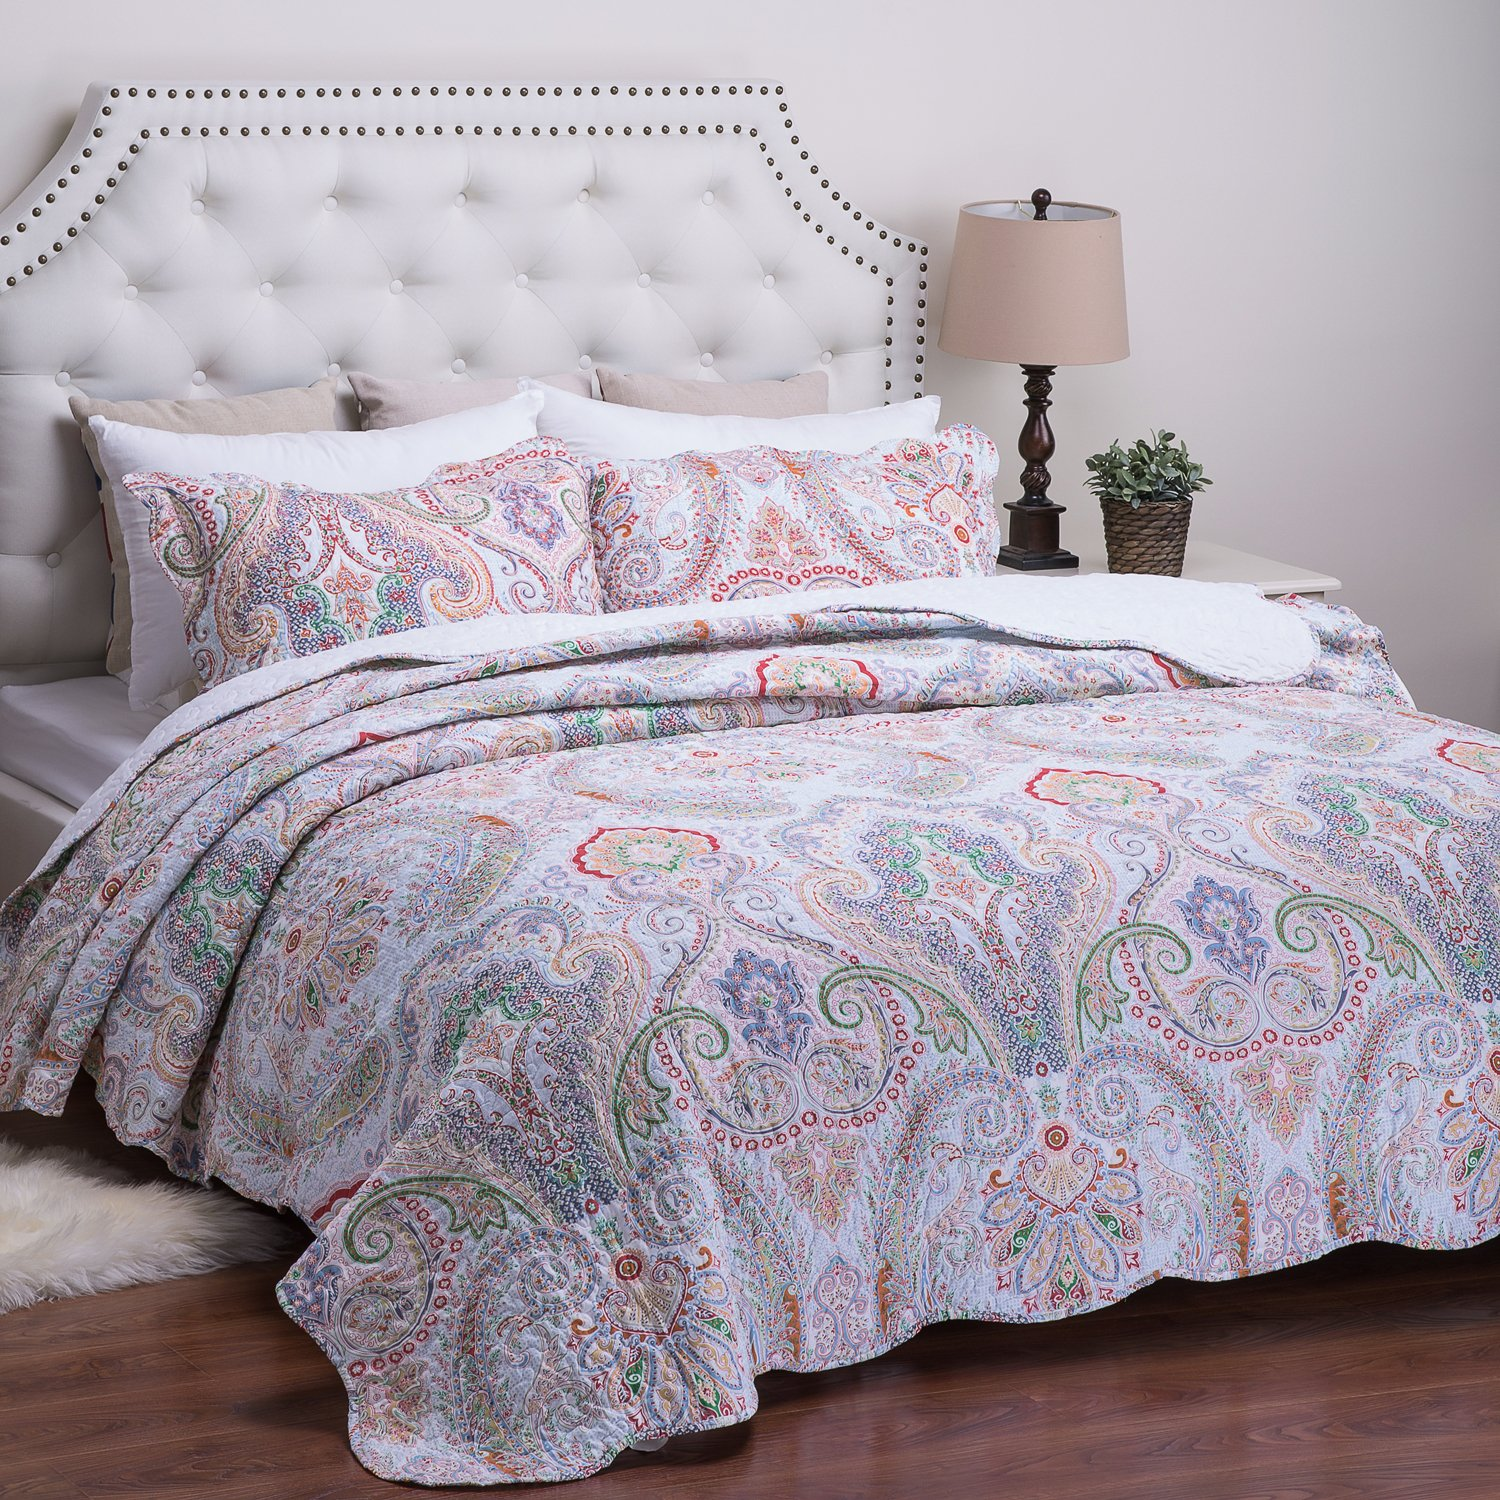 Printed Quilt Coverlet Set Full/Queen Crimson Blue Paisley Pattern Lightweight